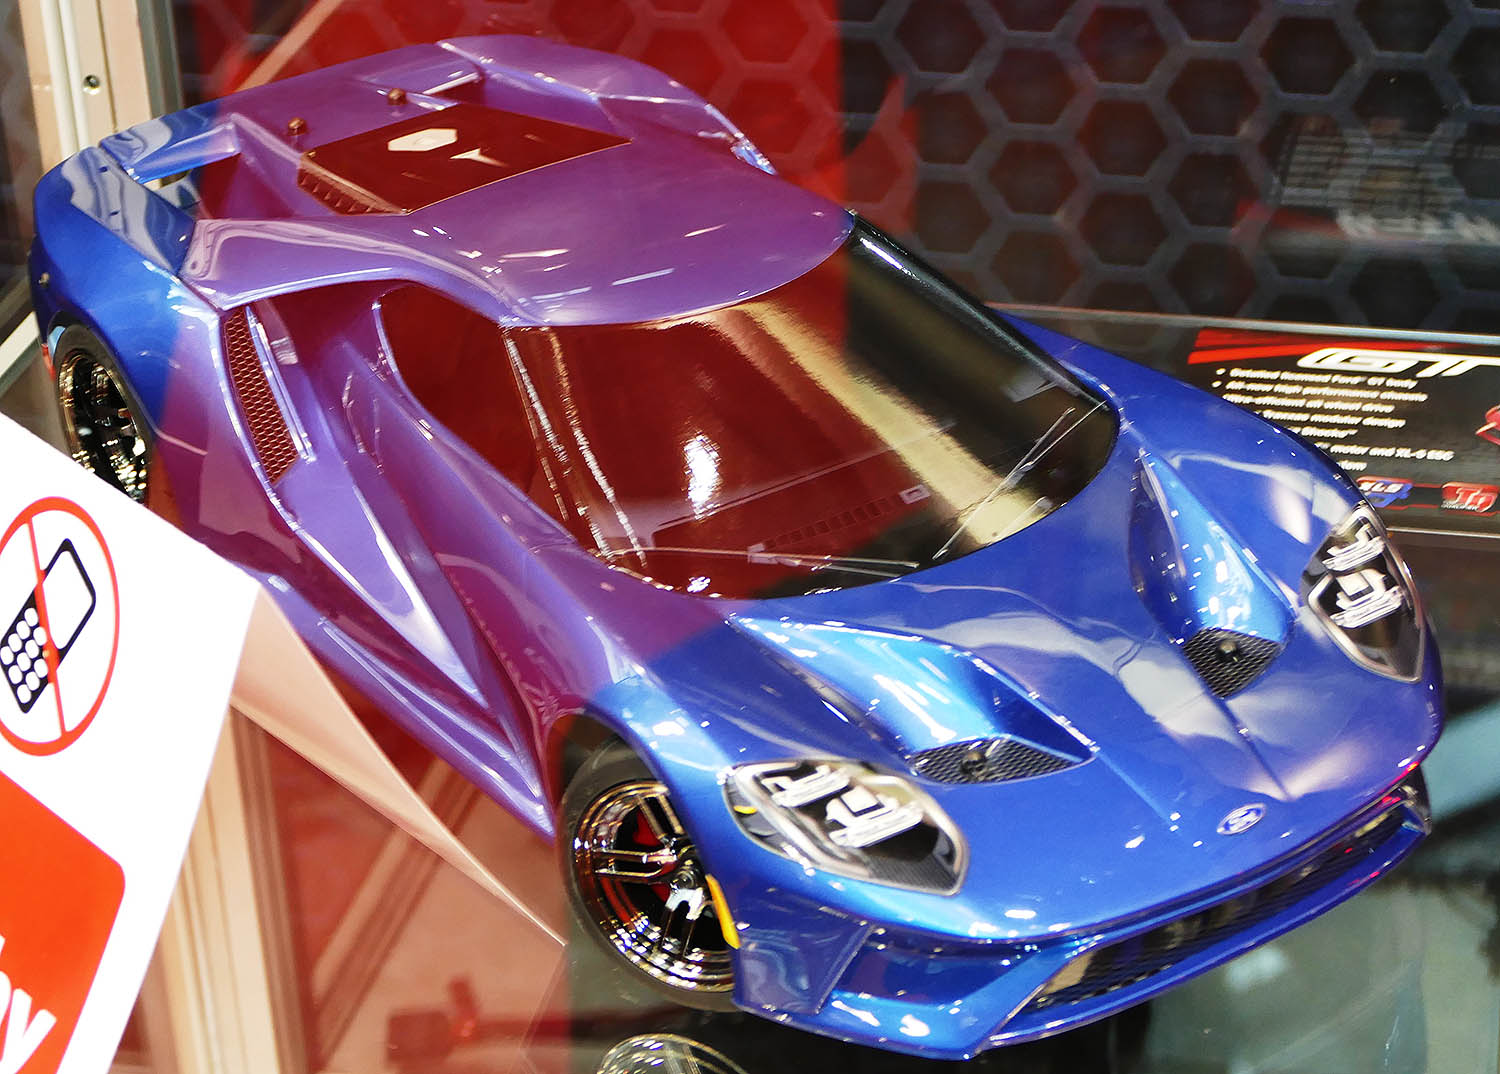 Not Easy To Photograph In A Display Case With Thousand Reflections The Ford Gt Of Traxxas Radiates This Body With Unique Curves Realized Under Official